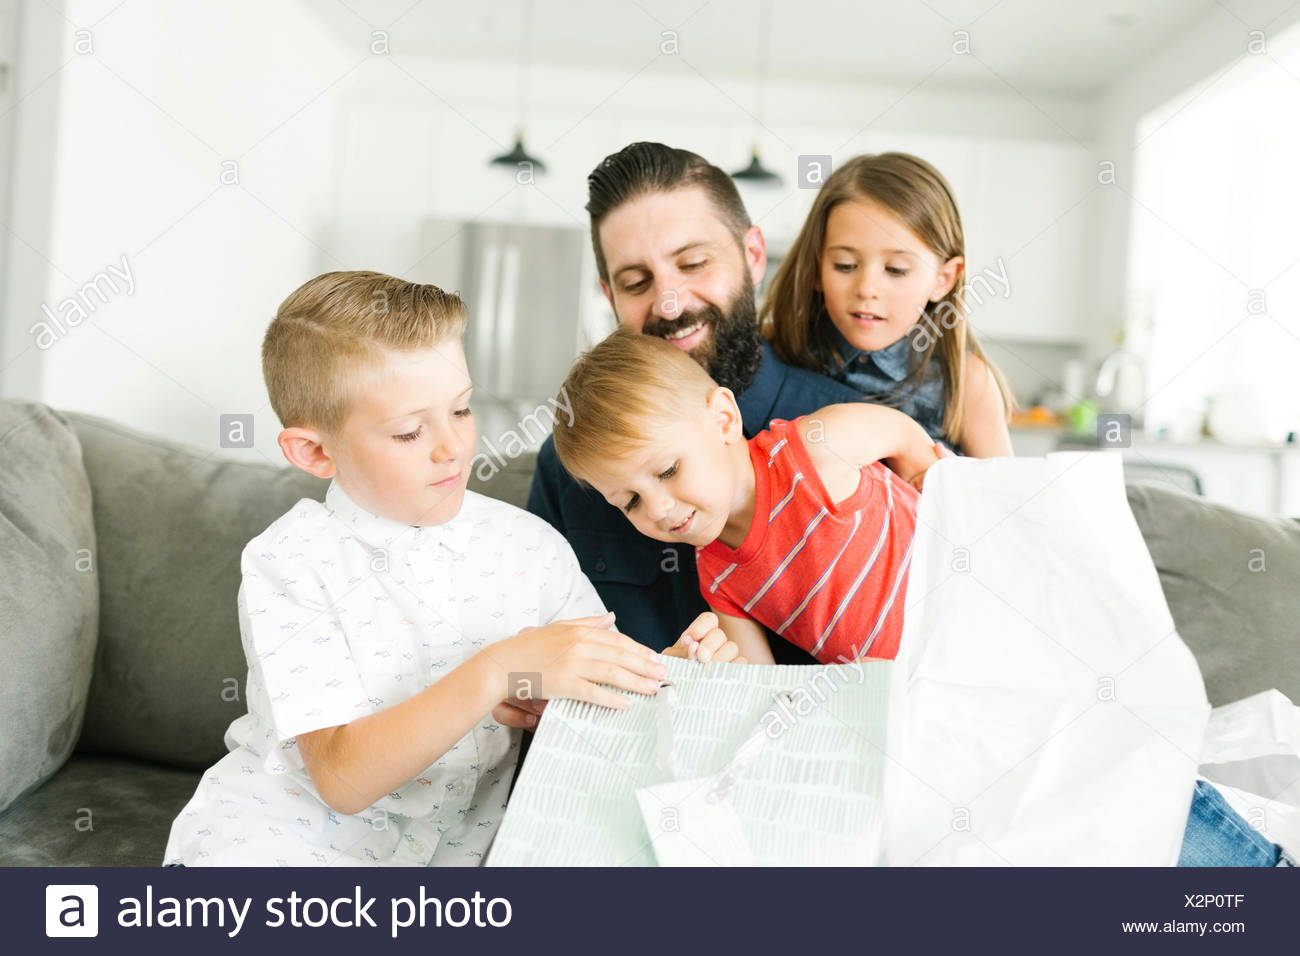 Family with three children (2-3, 6-7) celebrating fathers day - Stock Image